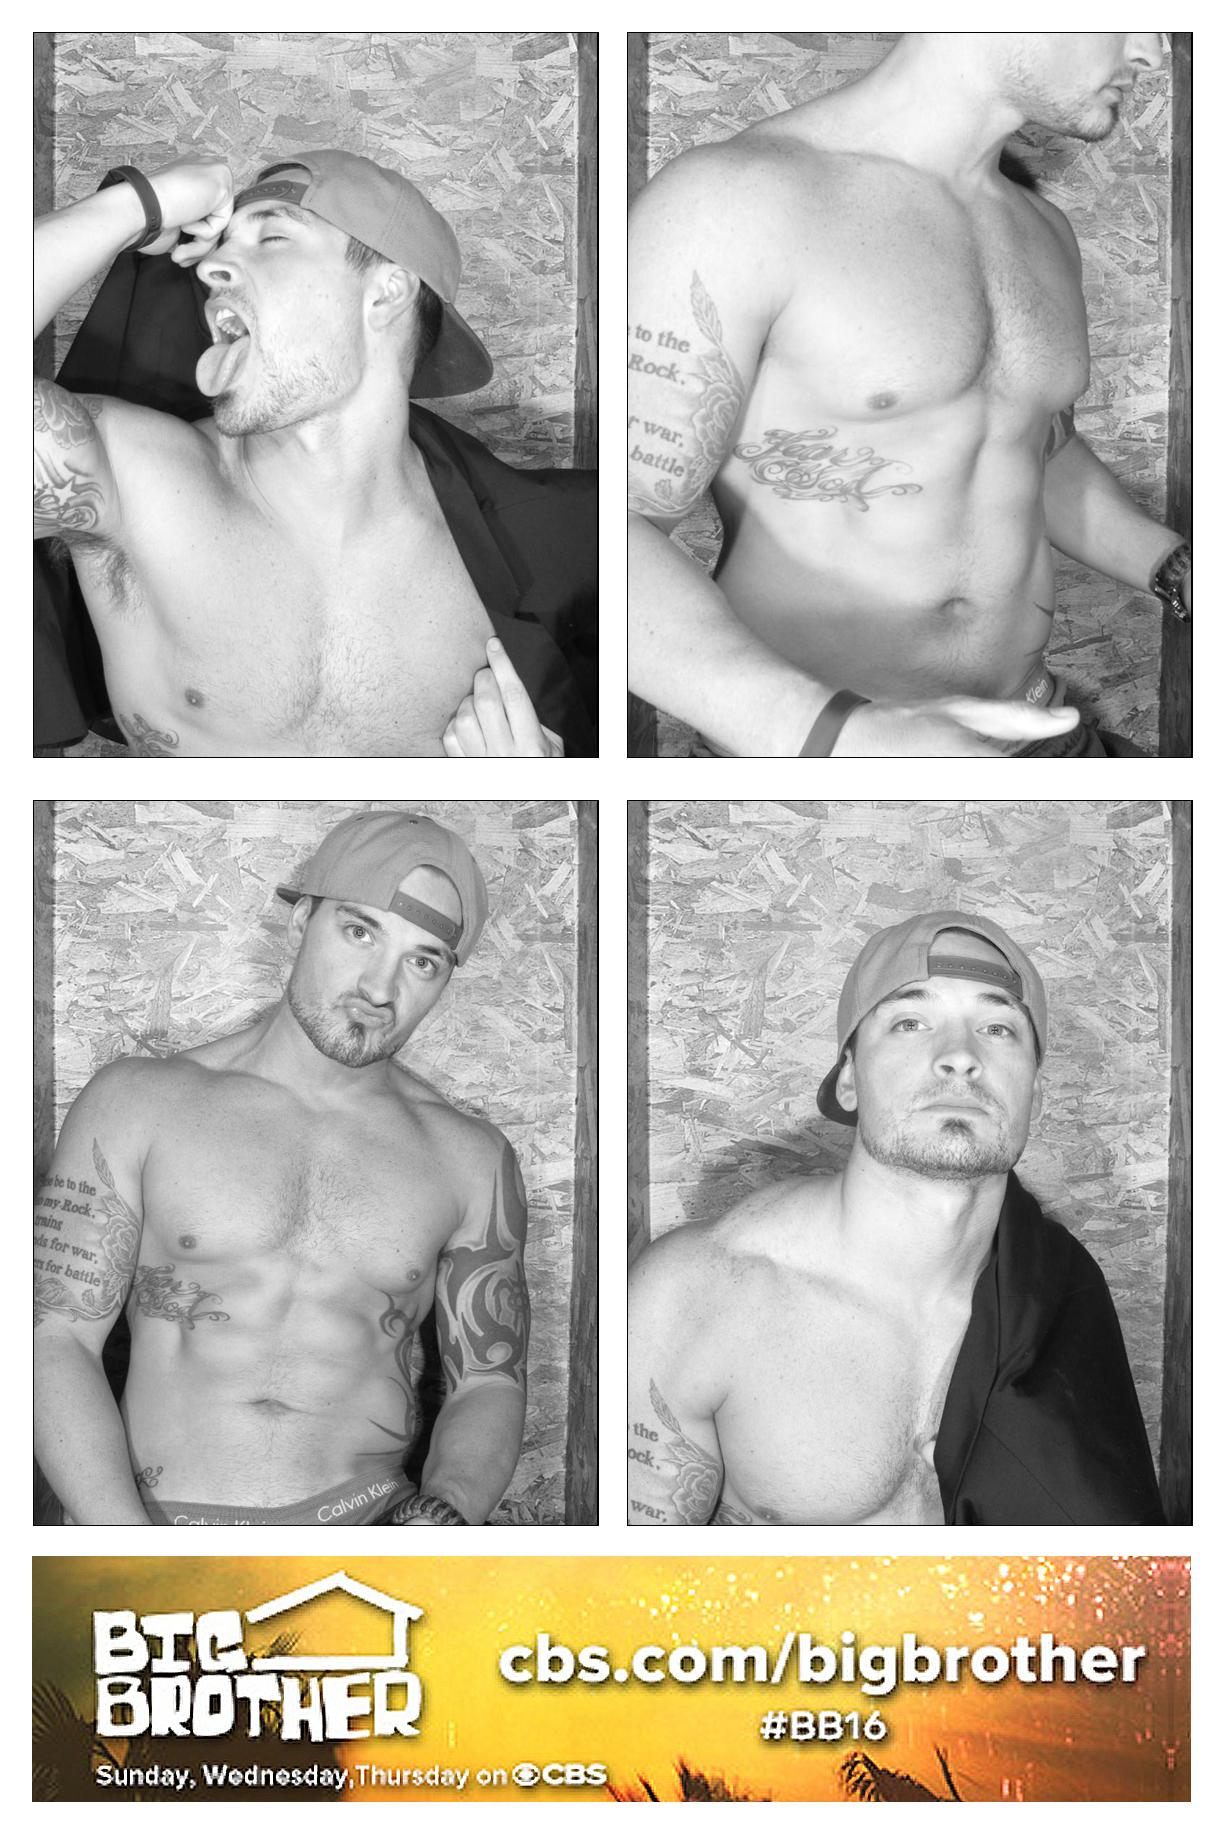 Shirtless in black and white